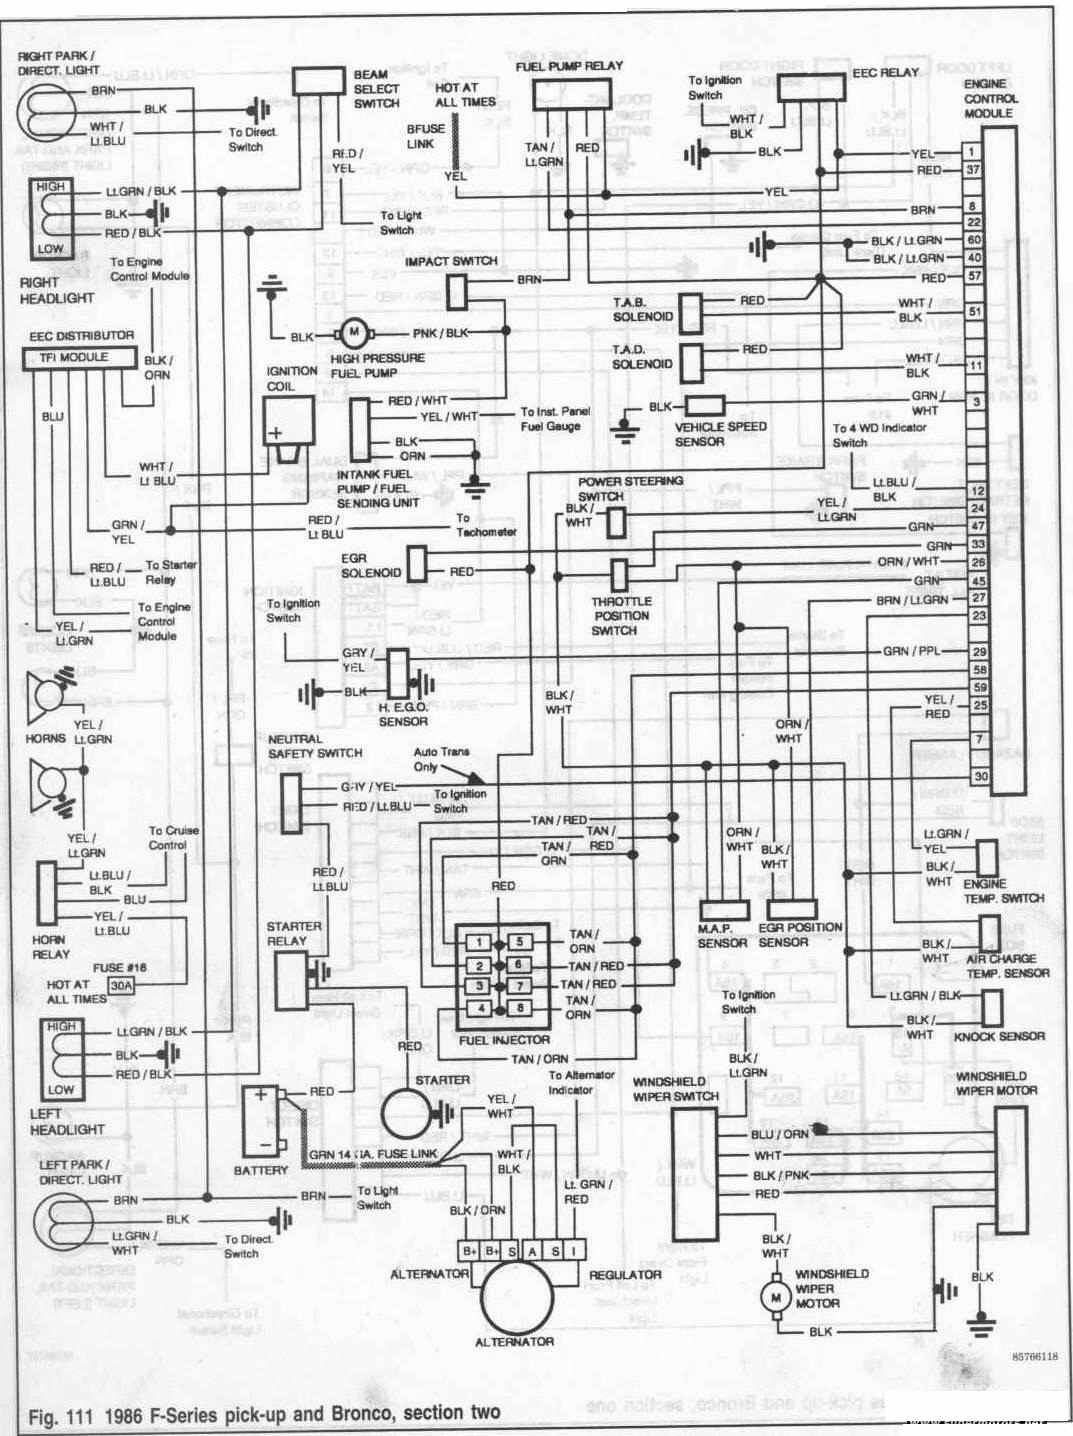 Ford Bronco And F Series Pickup Engine Control Module Wiring Diagram